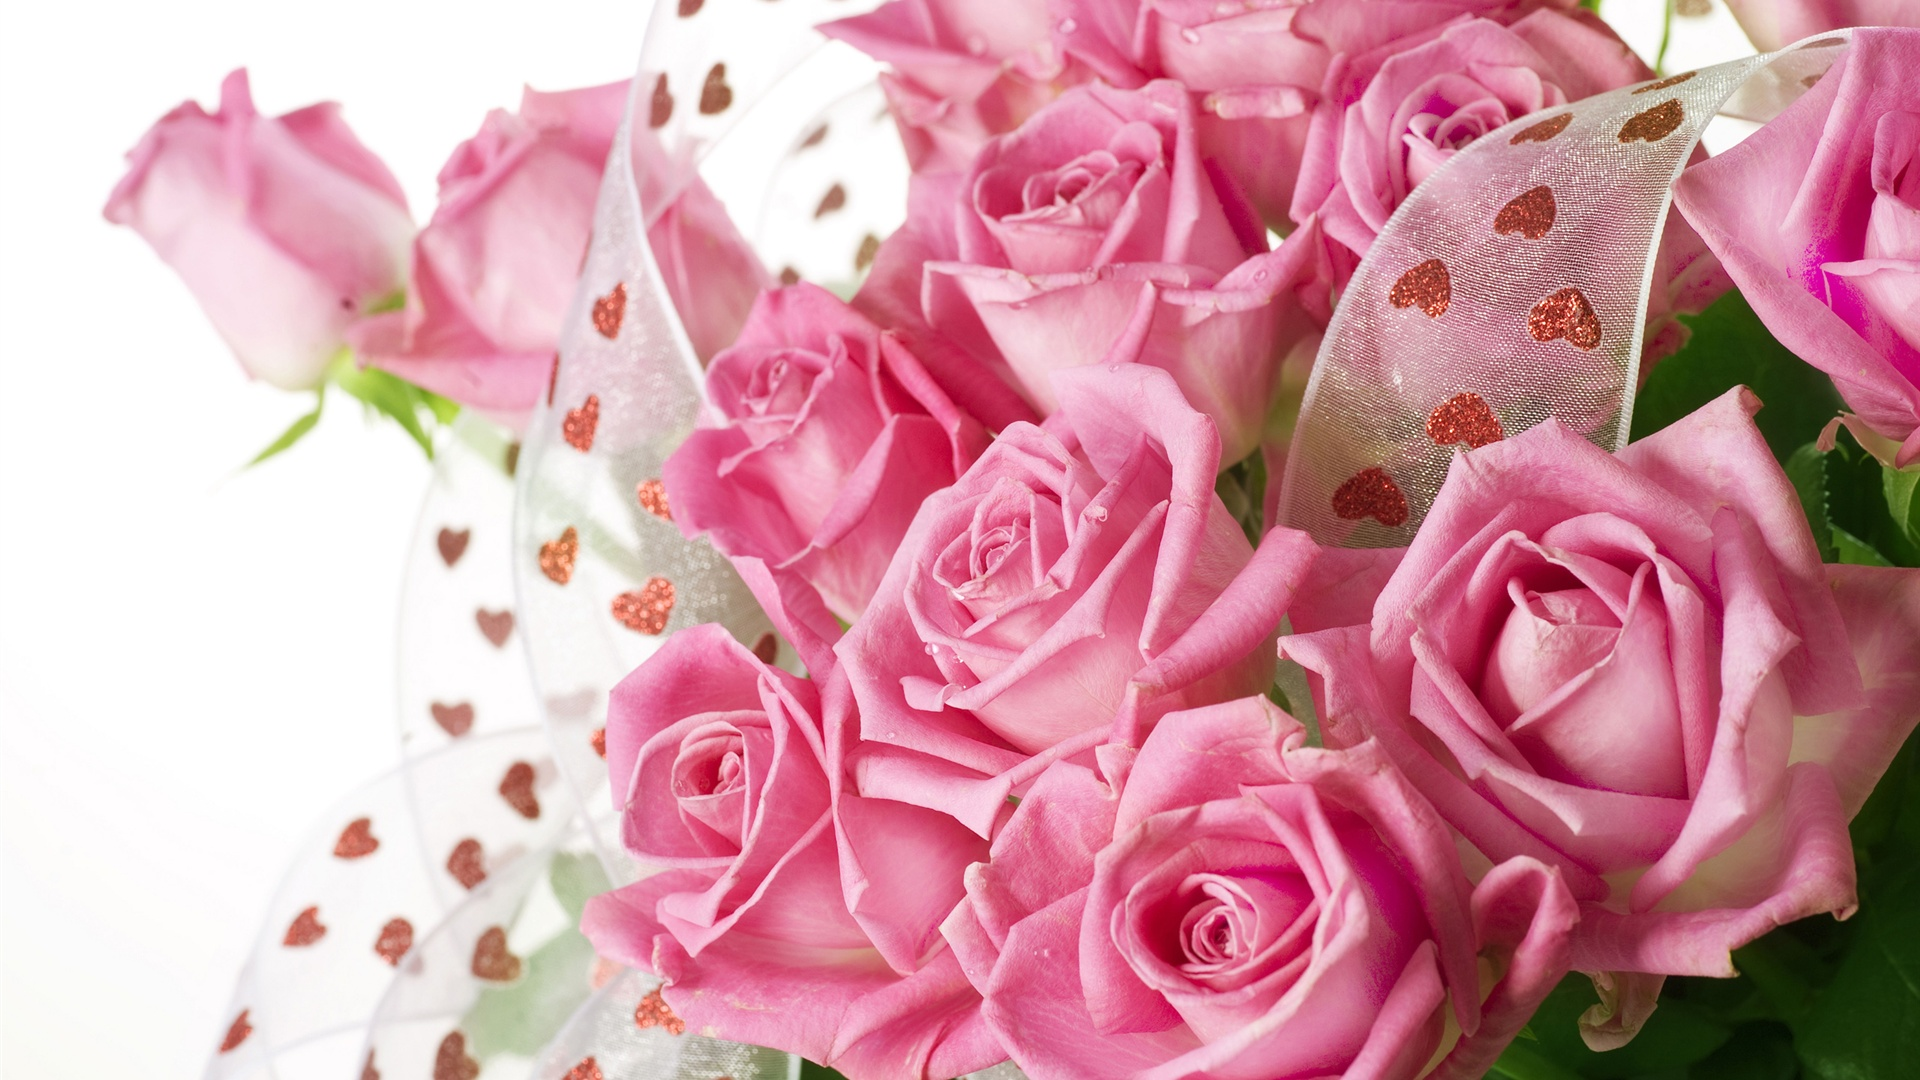 Pap is de parede rosa rosas bouquet com gotas de gua - Rose with water drops wallpaper ...